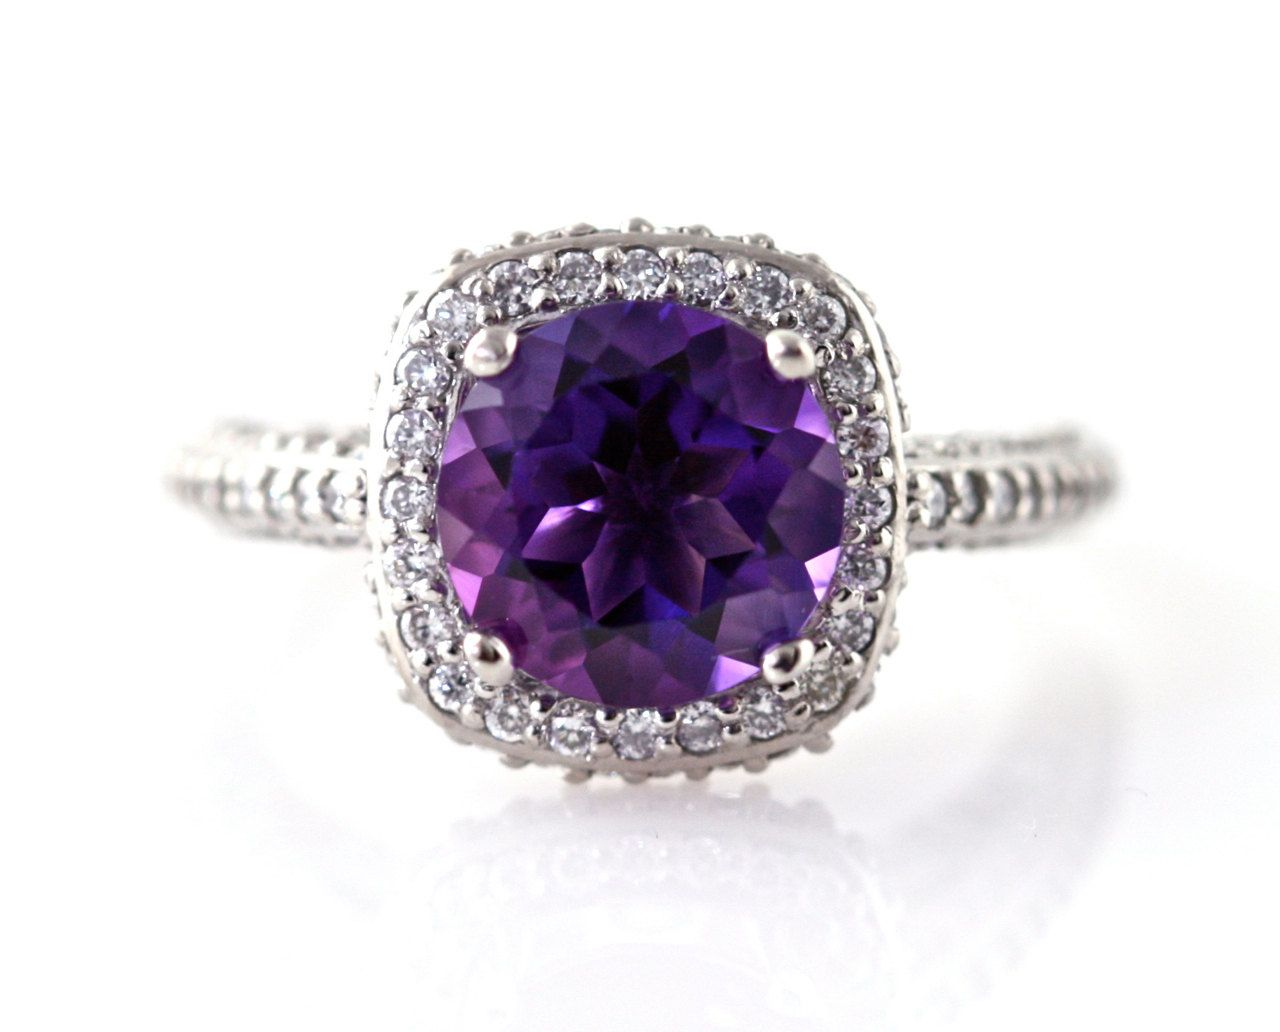 amethyst rings - photo #24